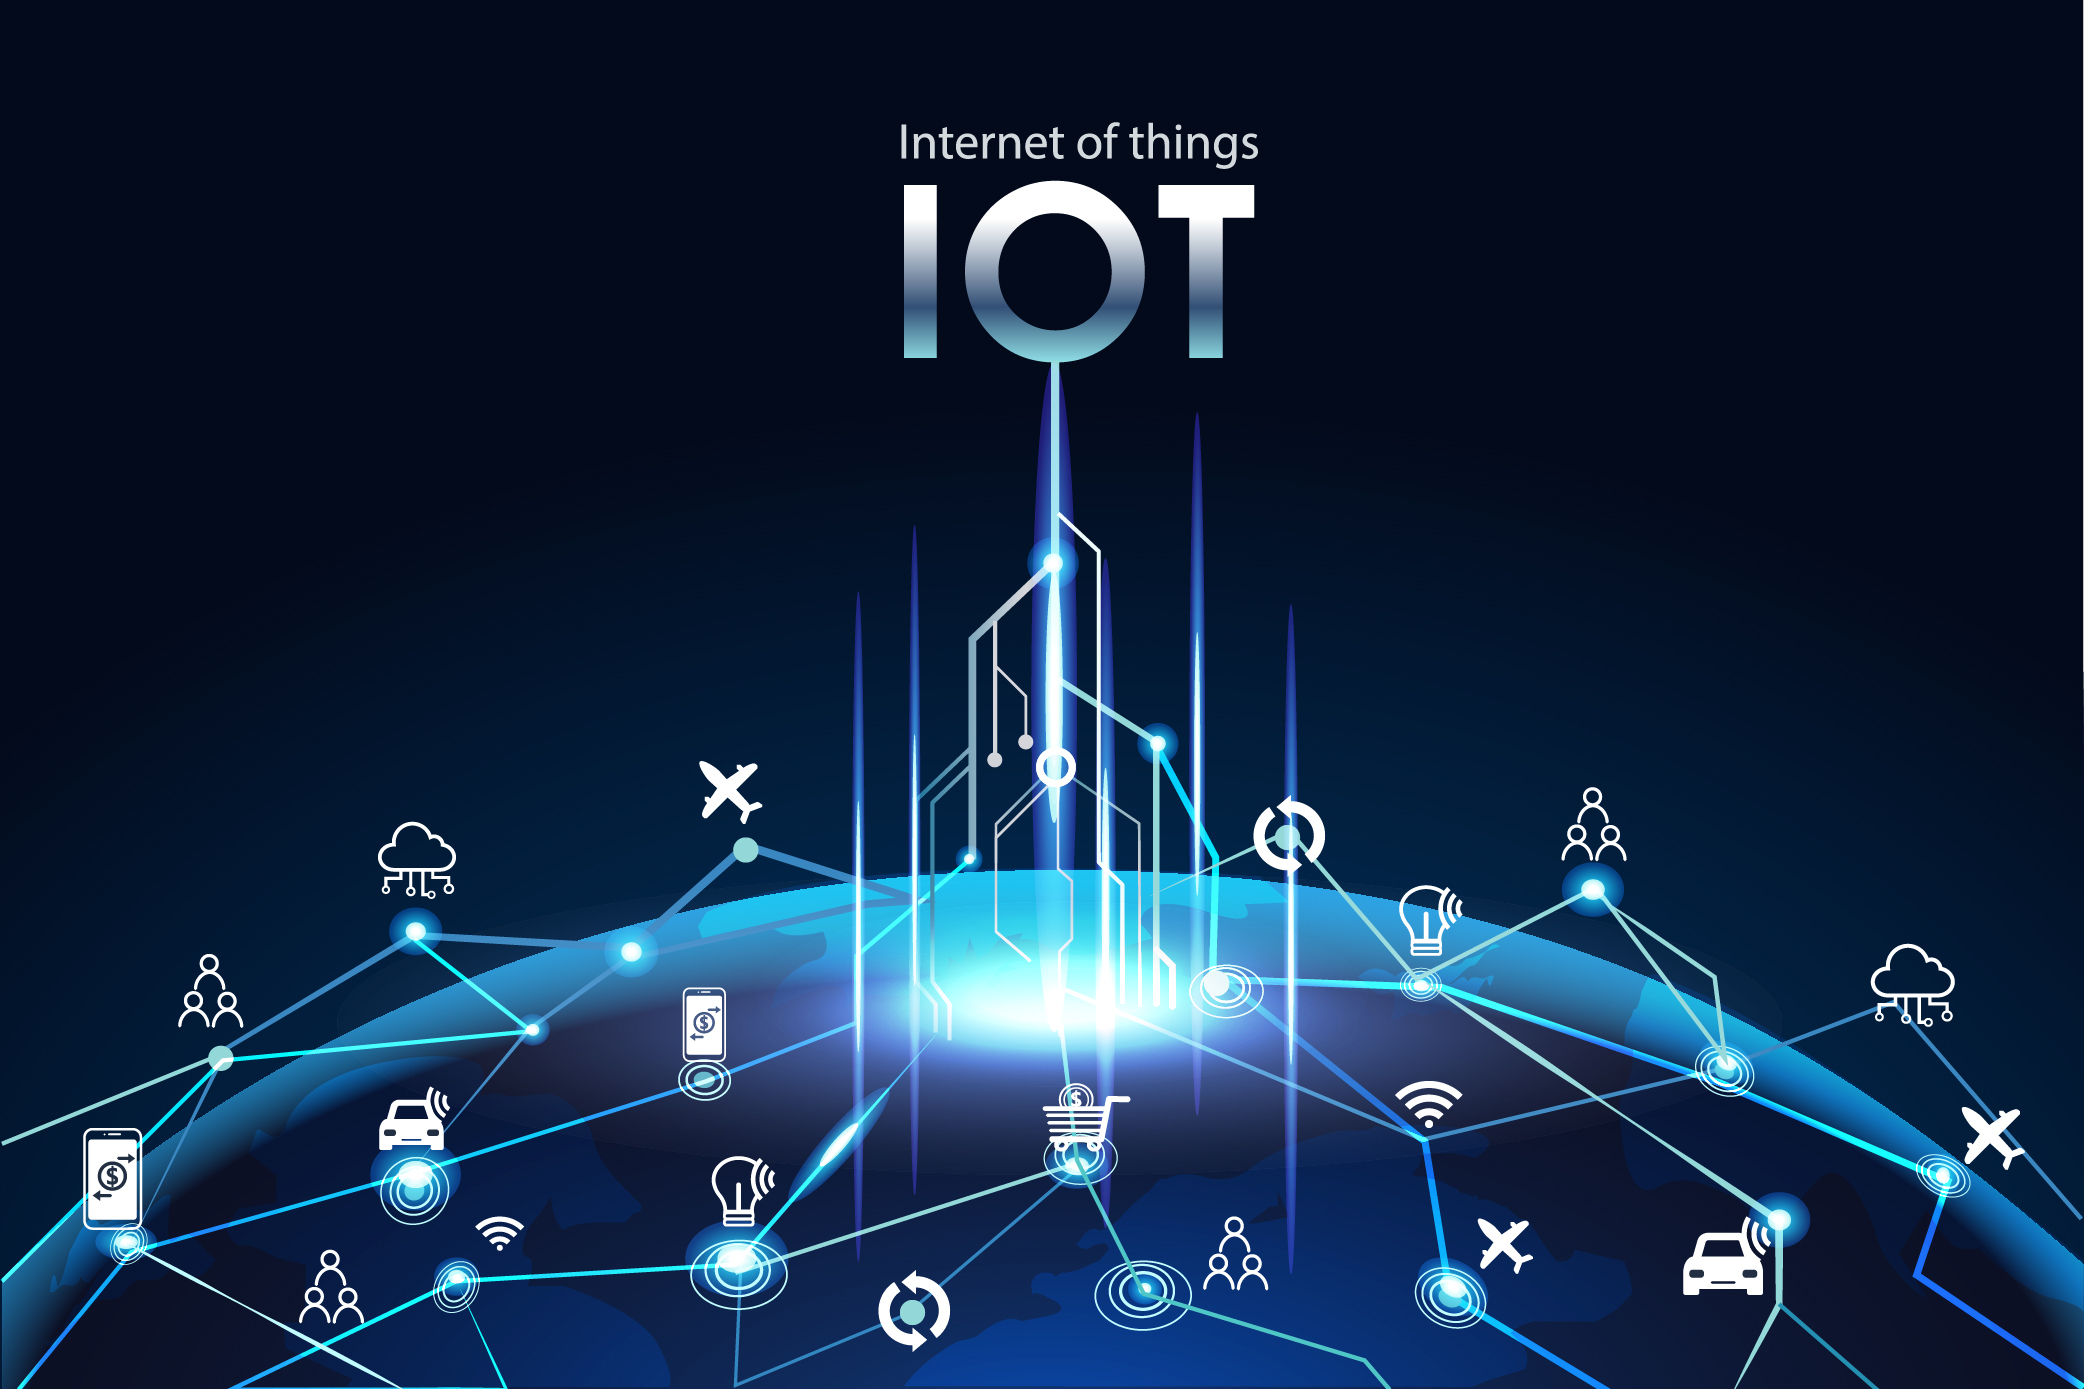 check the post:Top 3 IoT Trends for 2020 for a description of the image